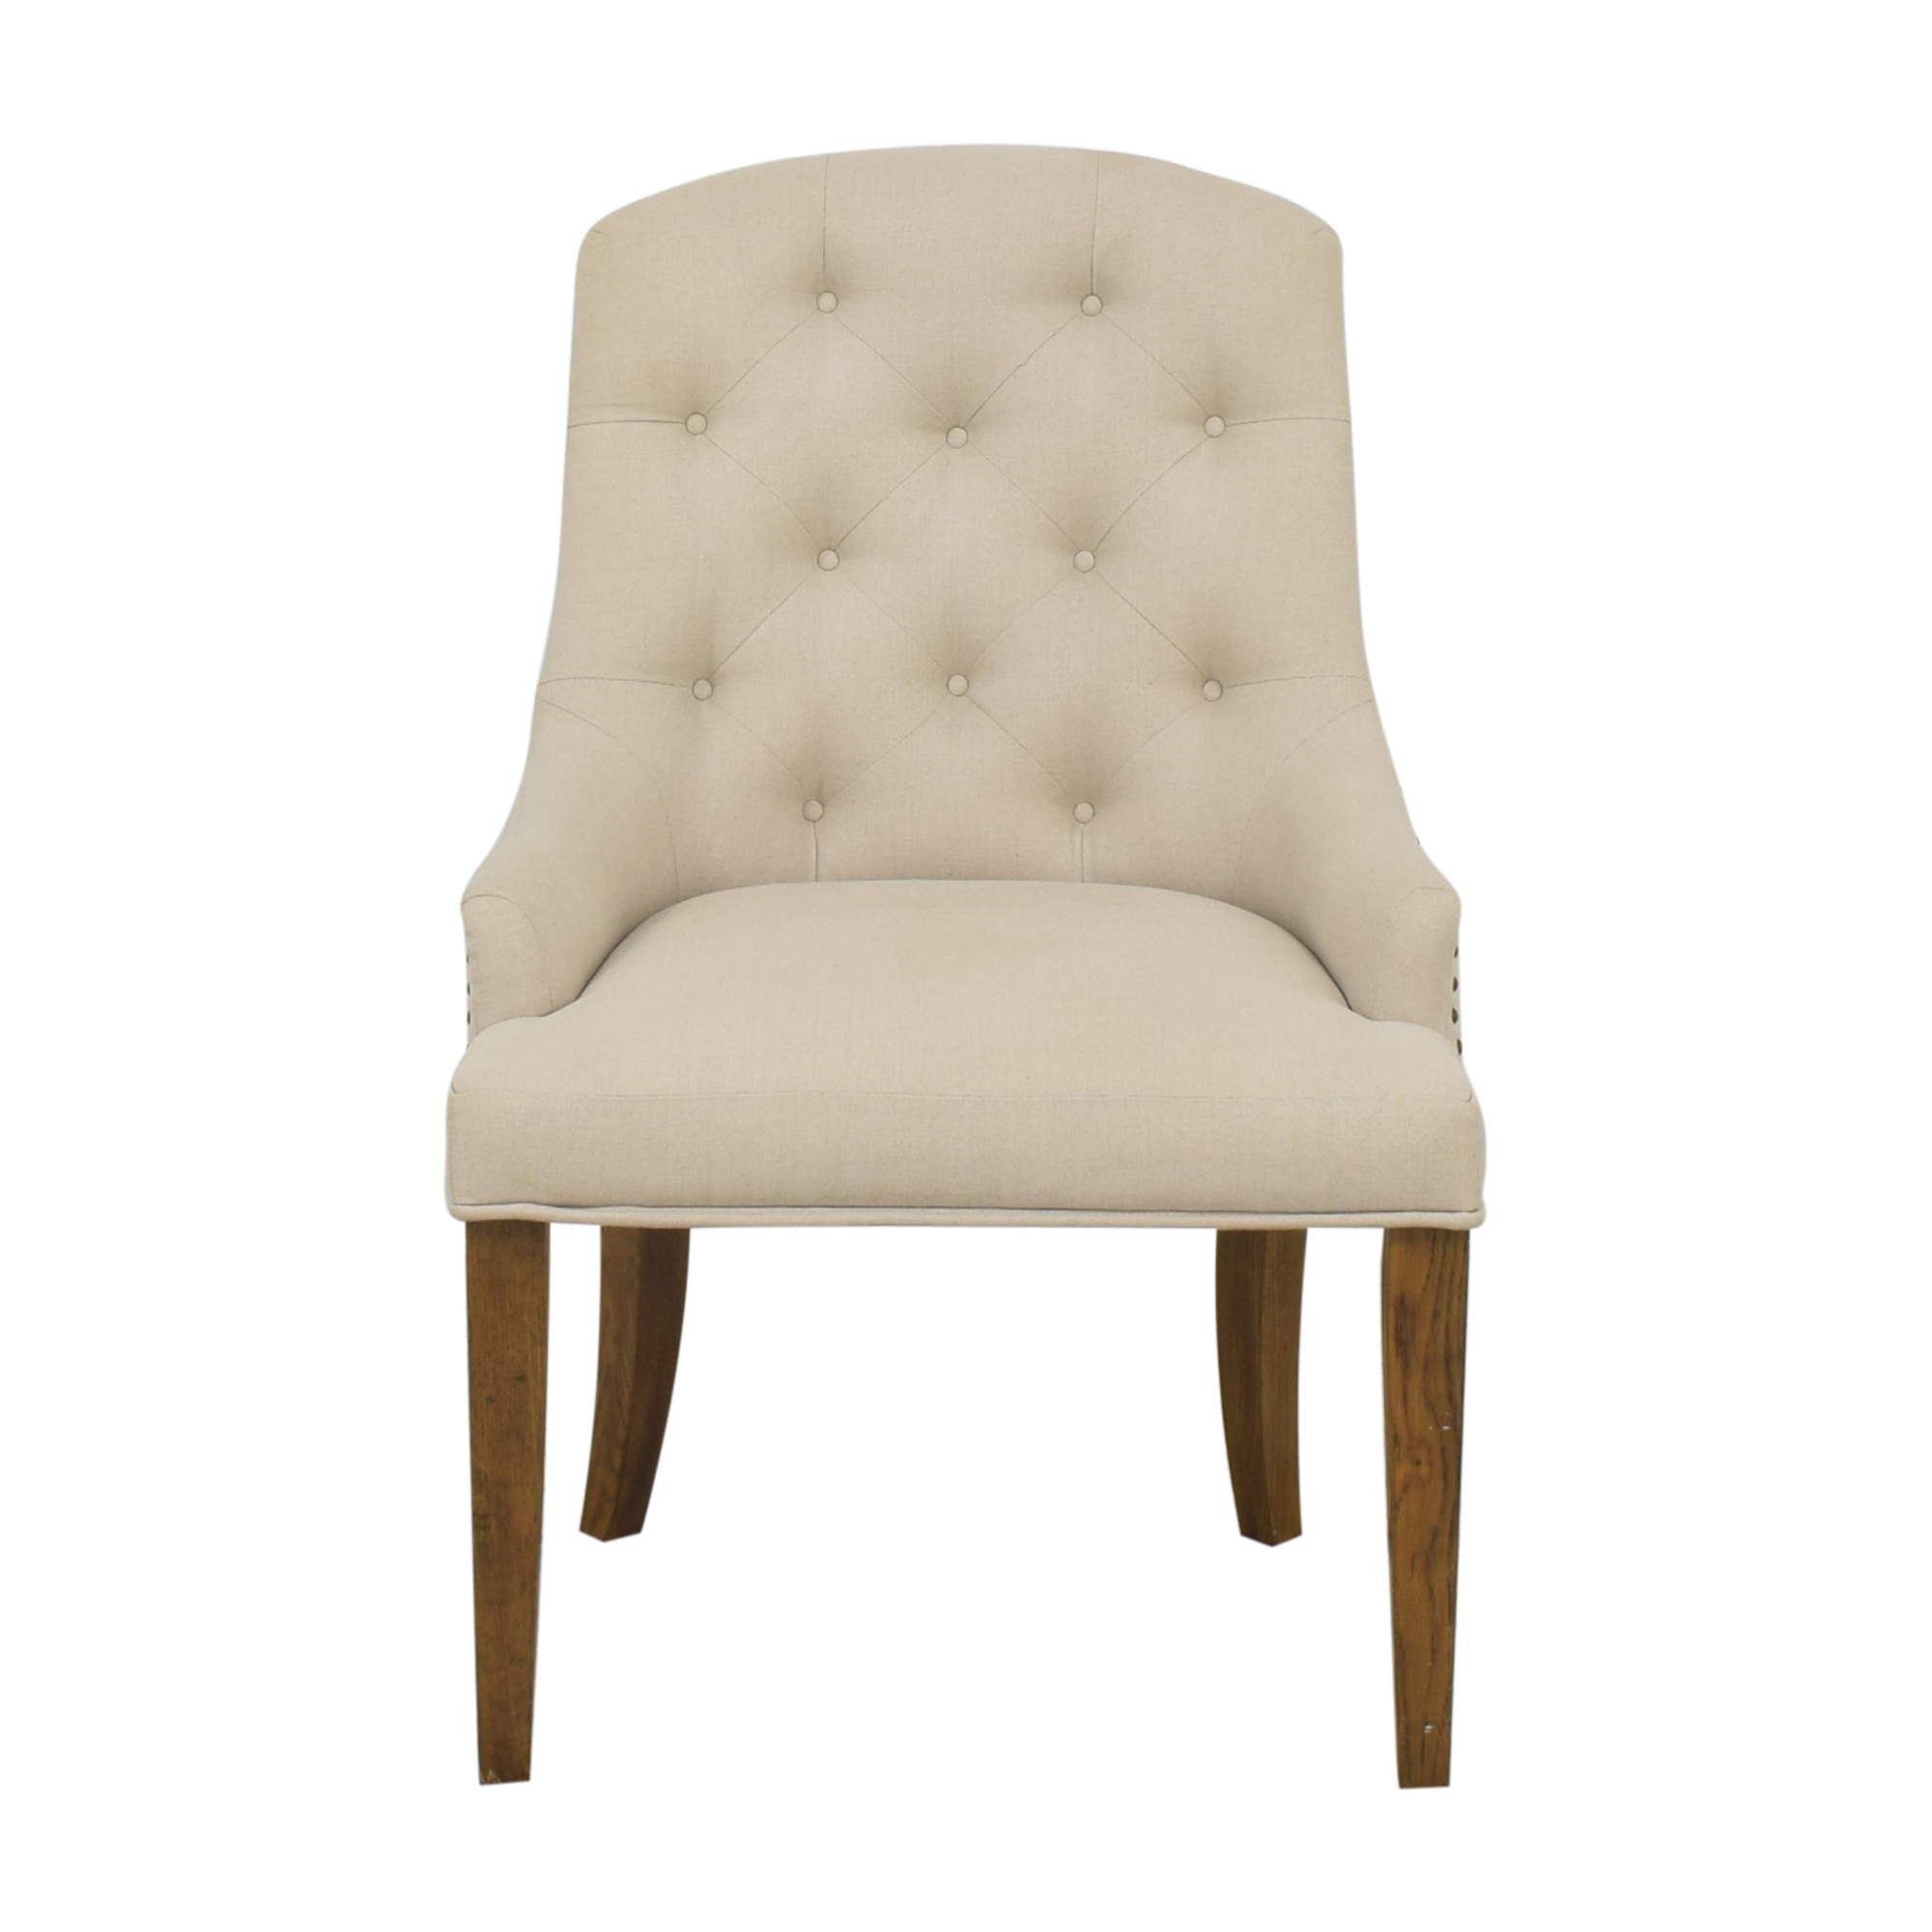 shop Pottery Barn Lorraine Upholstered Tufted Armchair Pottery Barn Chairs